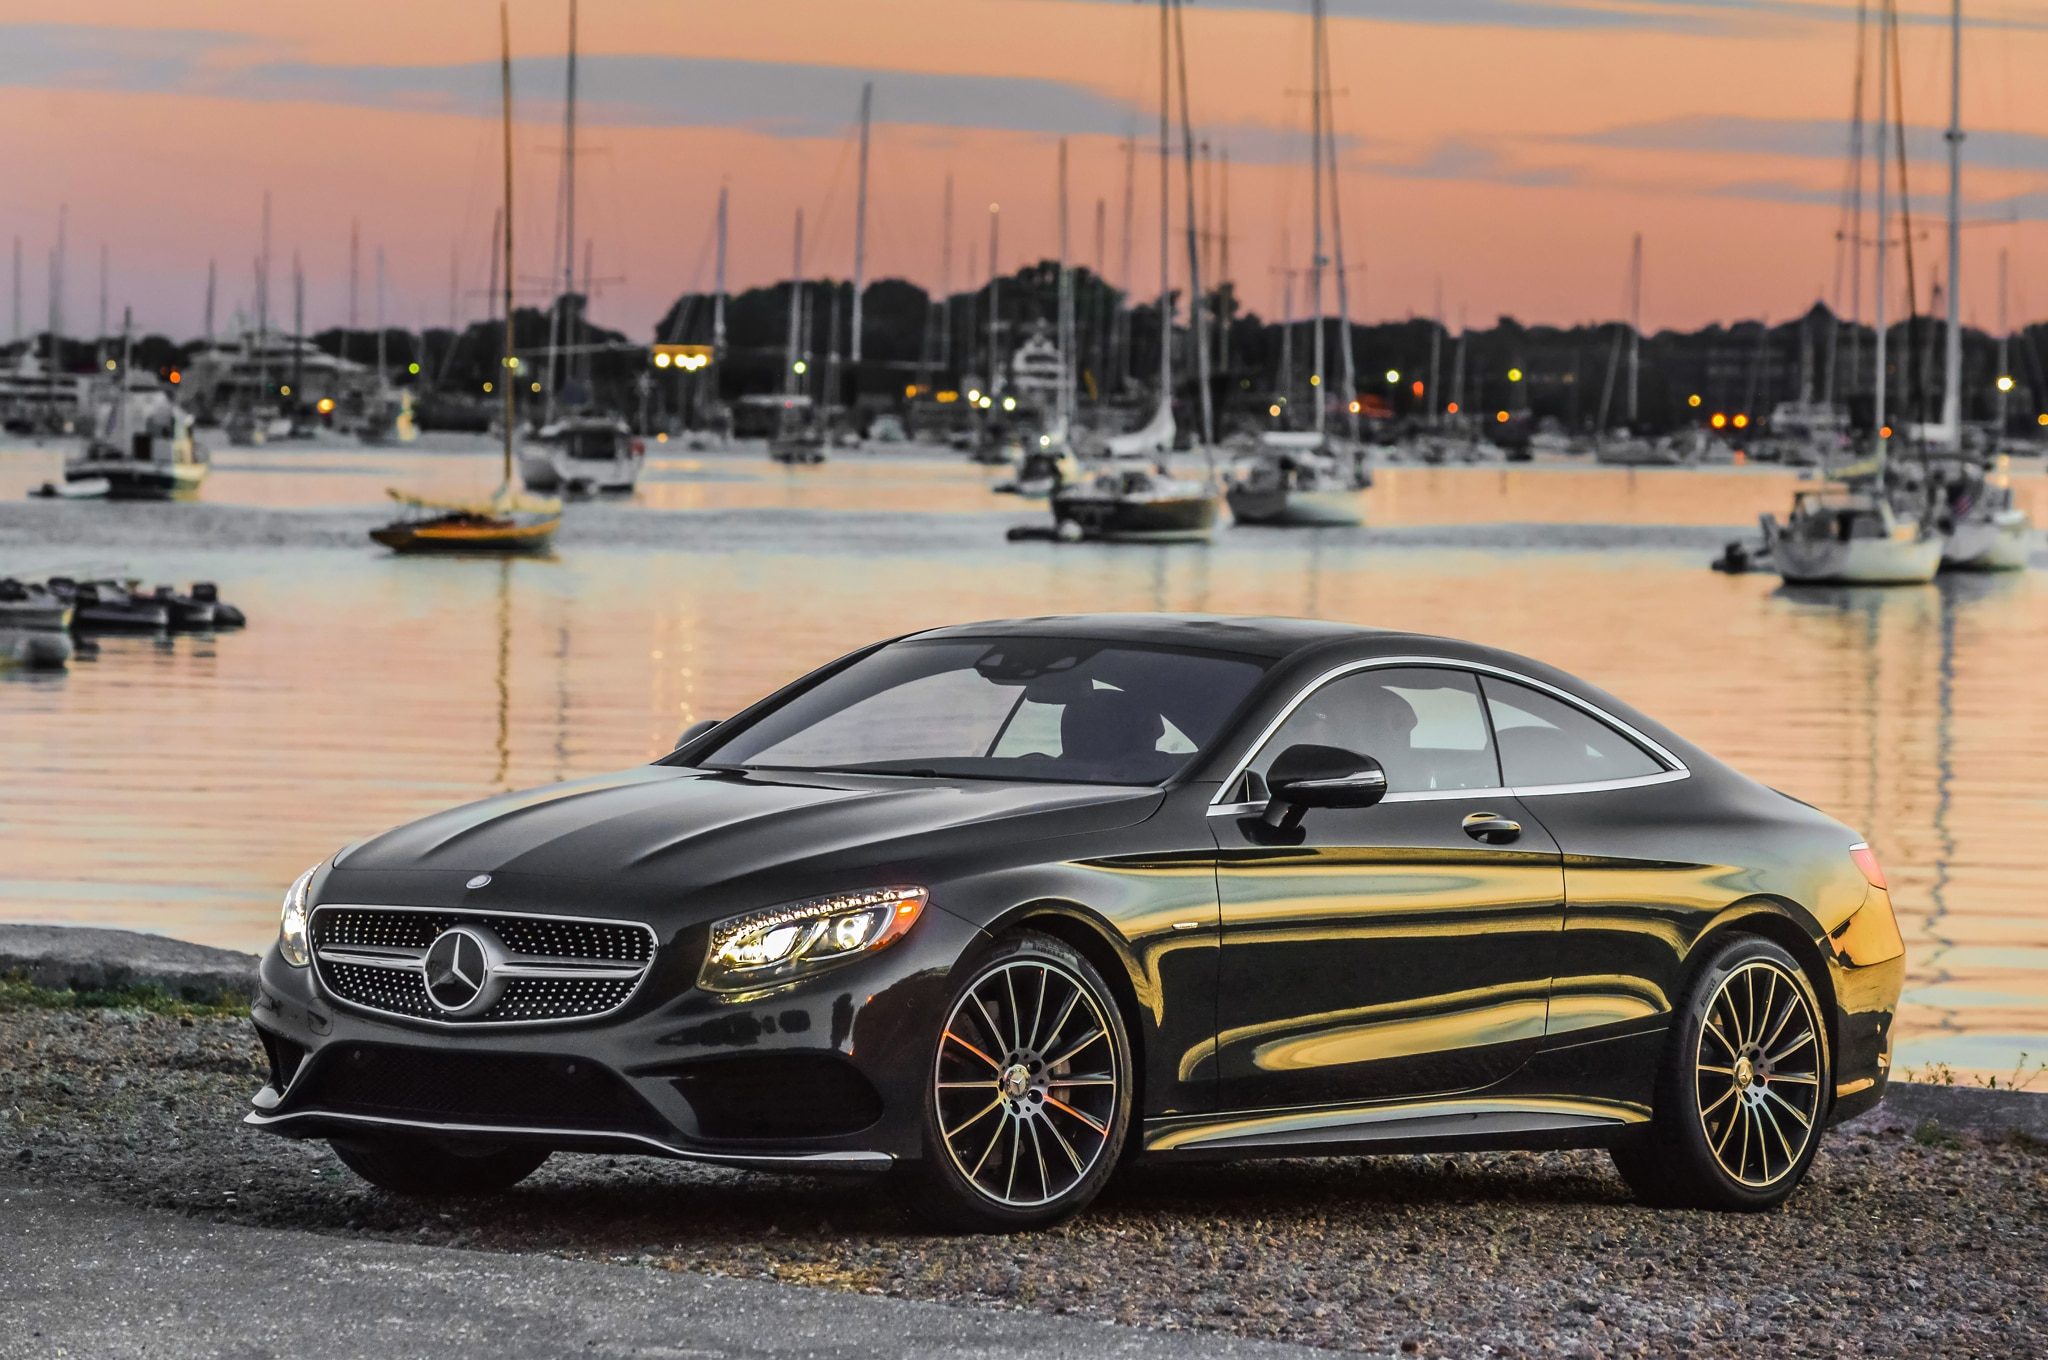 https://st.automobilemag.com/uploads/sites/11/2015/07/2015-Mercedes-Benz-S550-4Matic-Coupe-front-three-quarter-04.jpg